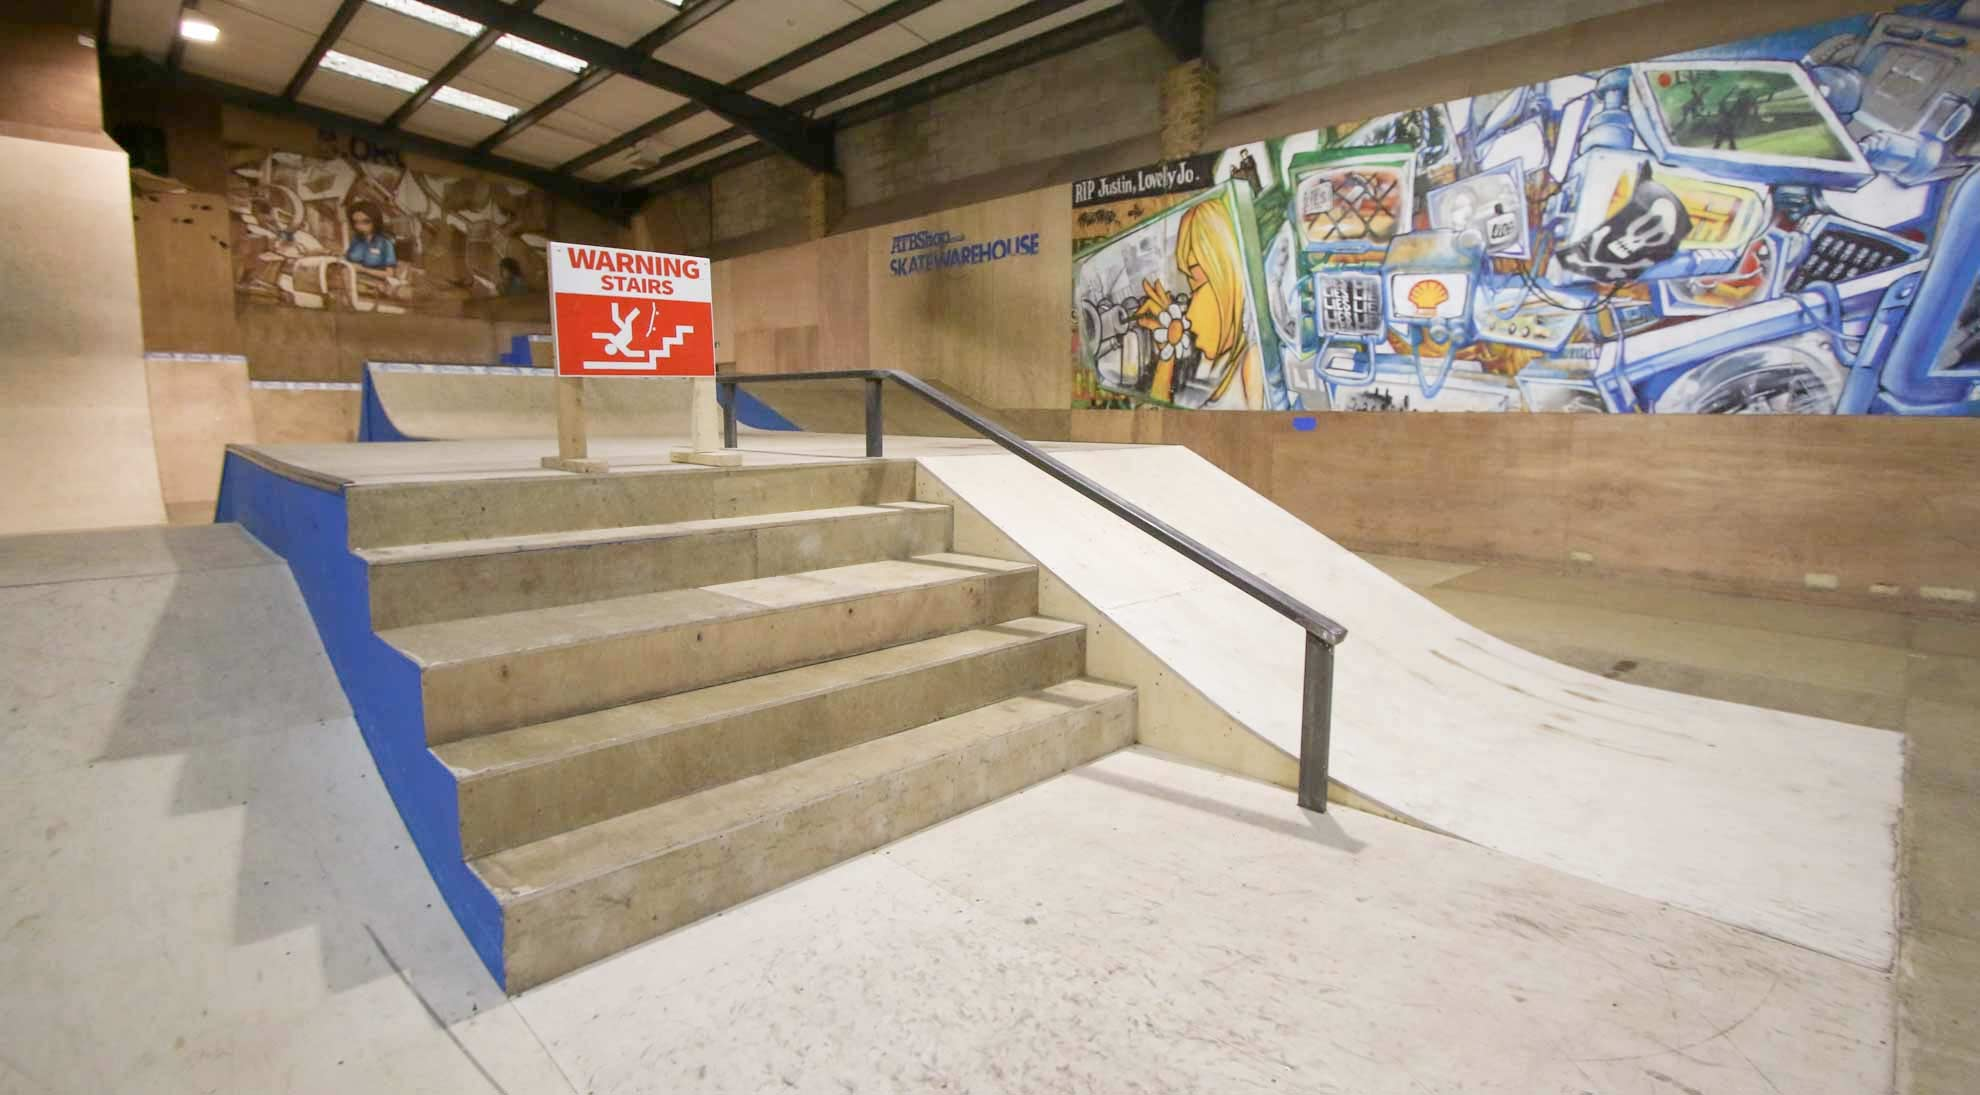 indoor-skatepark-swindon-atbshop